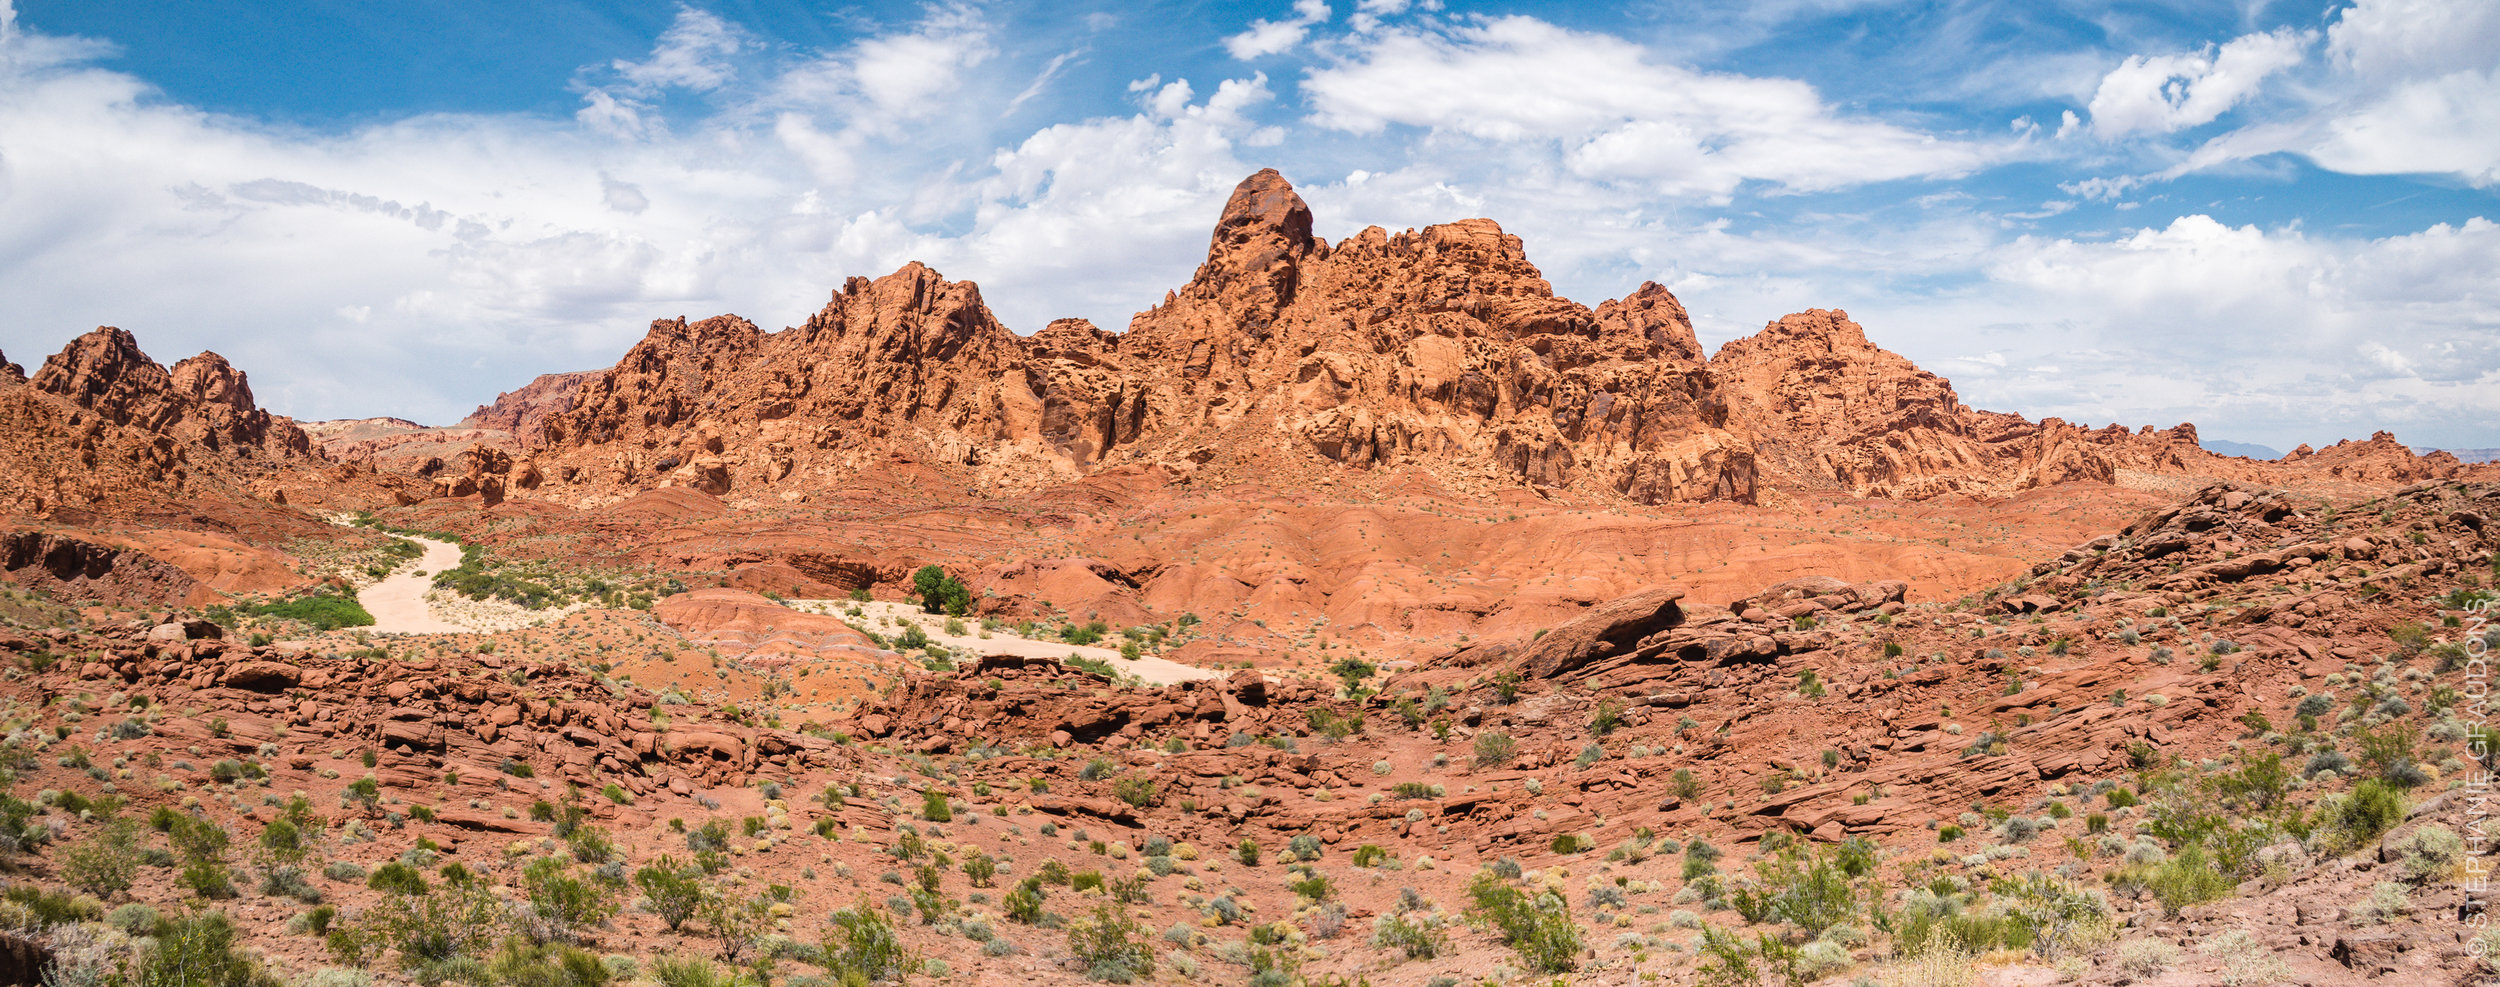 Valley-of-Fire-Nevada-.jpg